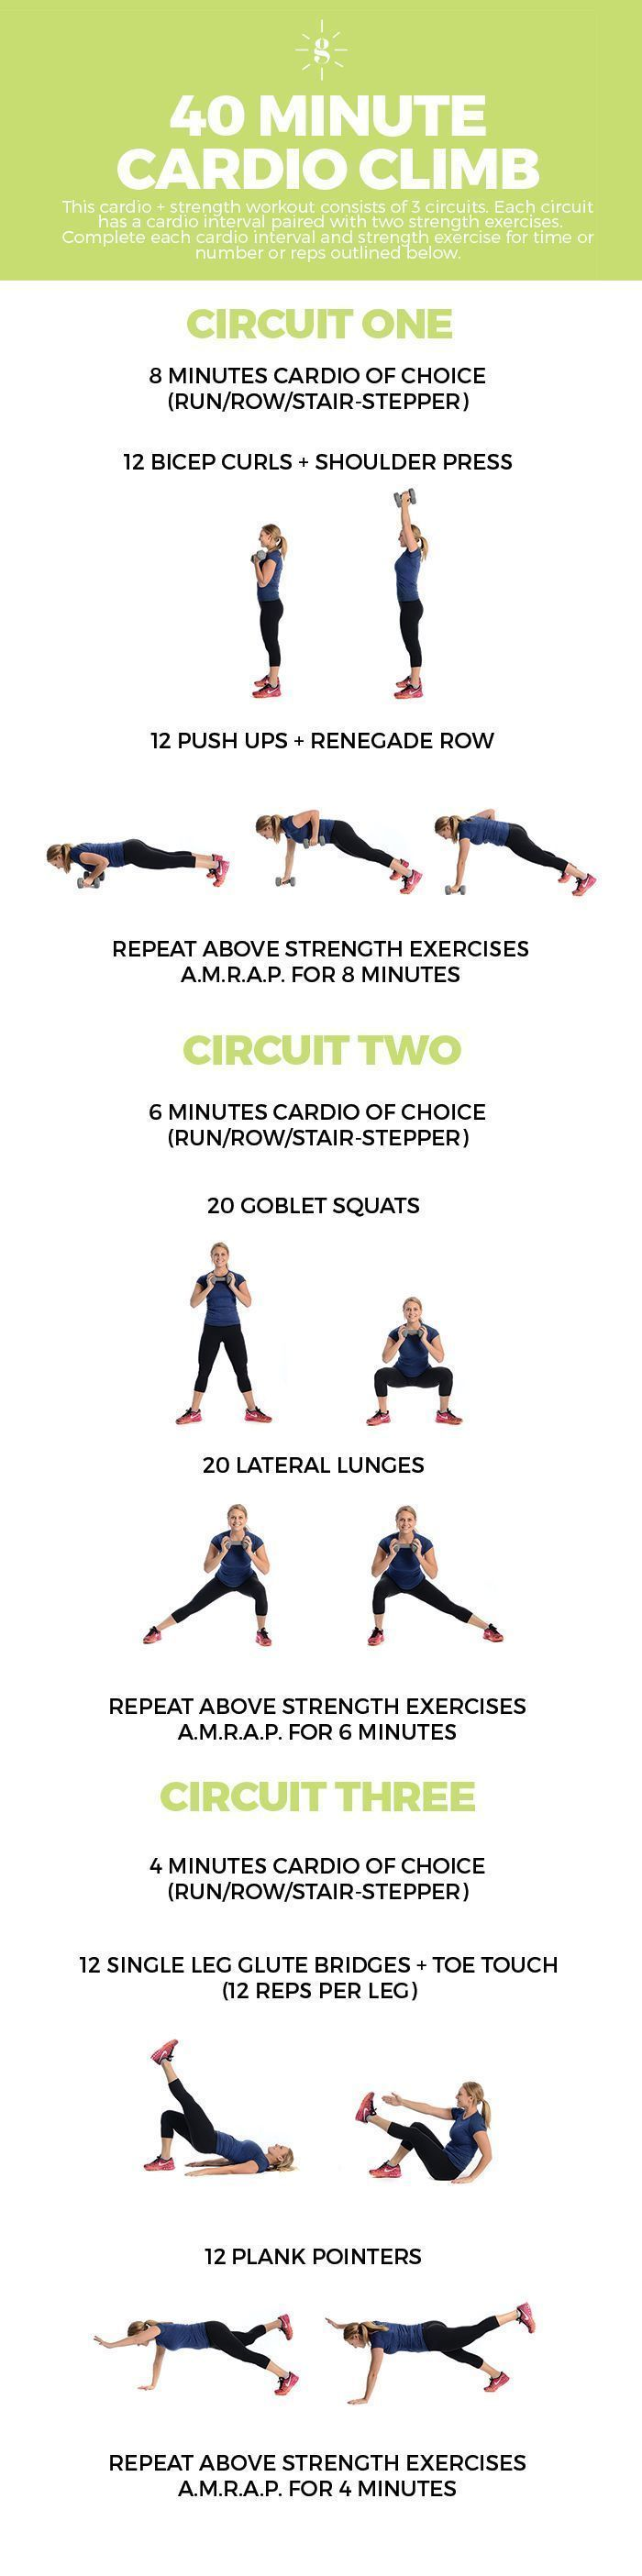 Do this 40 minute cardio climb workout and mix steady state cardio with strength training AMRAP circuits!